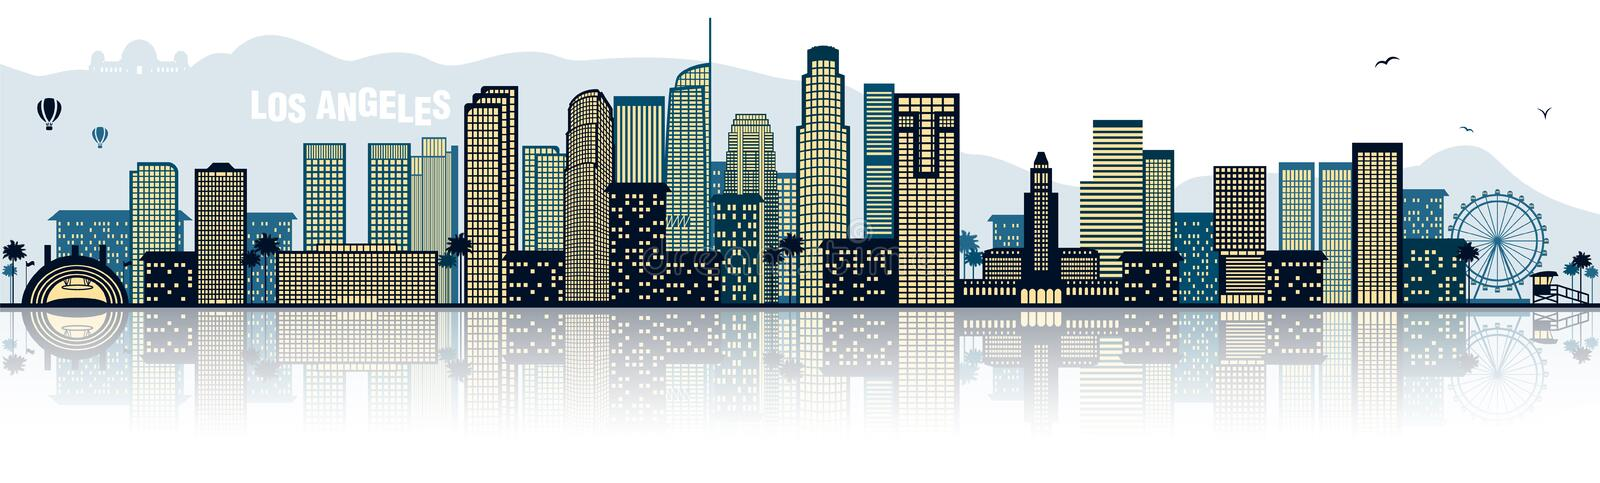 Los Angeles L.A. USA america skyline isolated vector. Design vector illustration